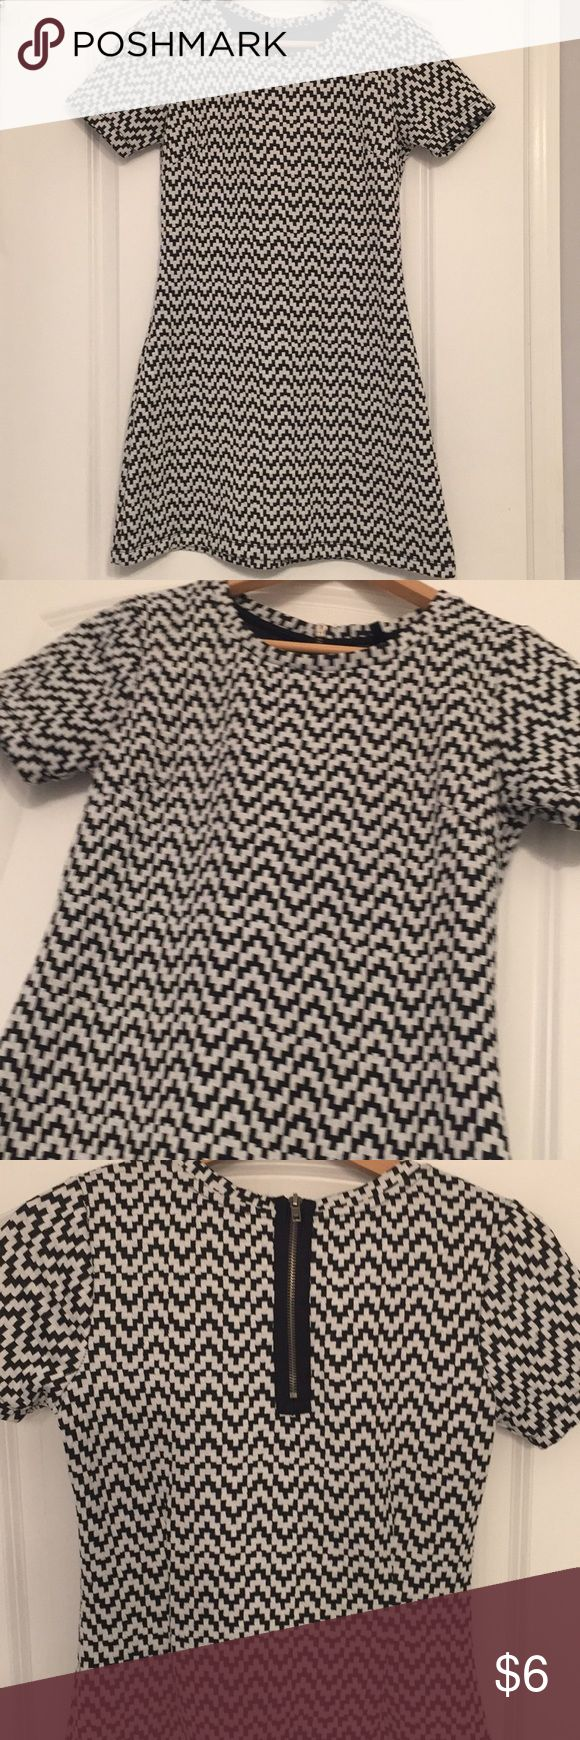 Black and white houndstooth short sleeved dress Size Xsmall  Flirty, feminine and still appropriate I'm a 34b size small and this dress fit just right  Black and white Thicker quality material- lines and no need to worry about slip or anything see thru ❤️ Dresses Mini